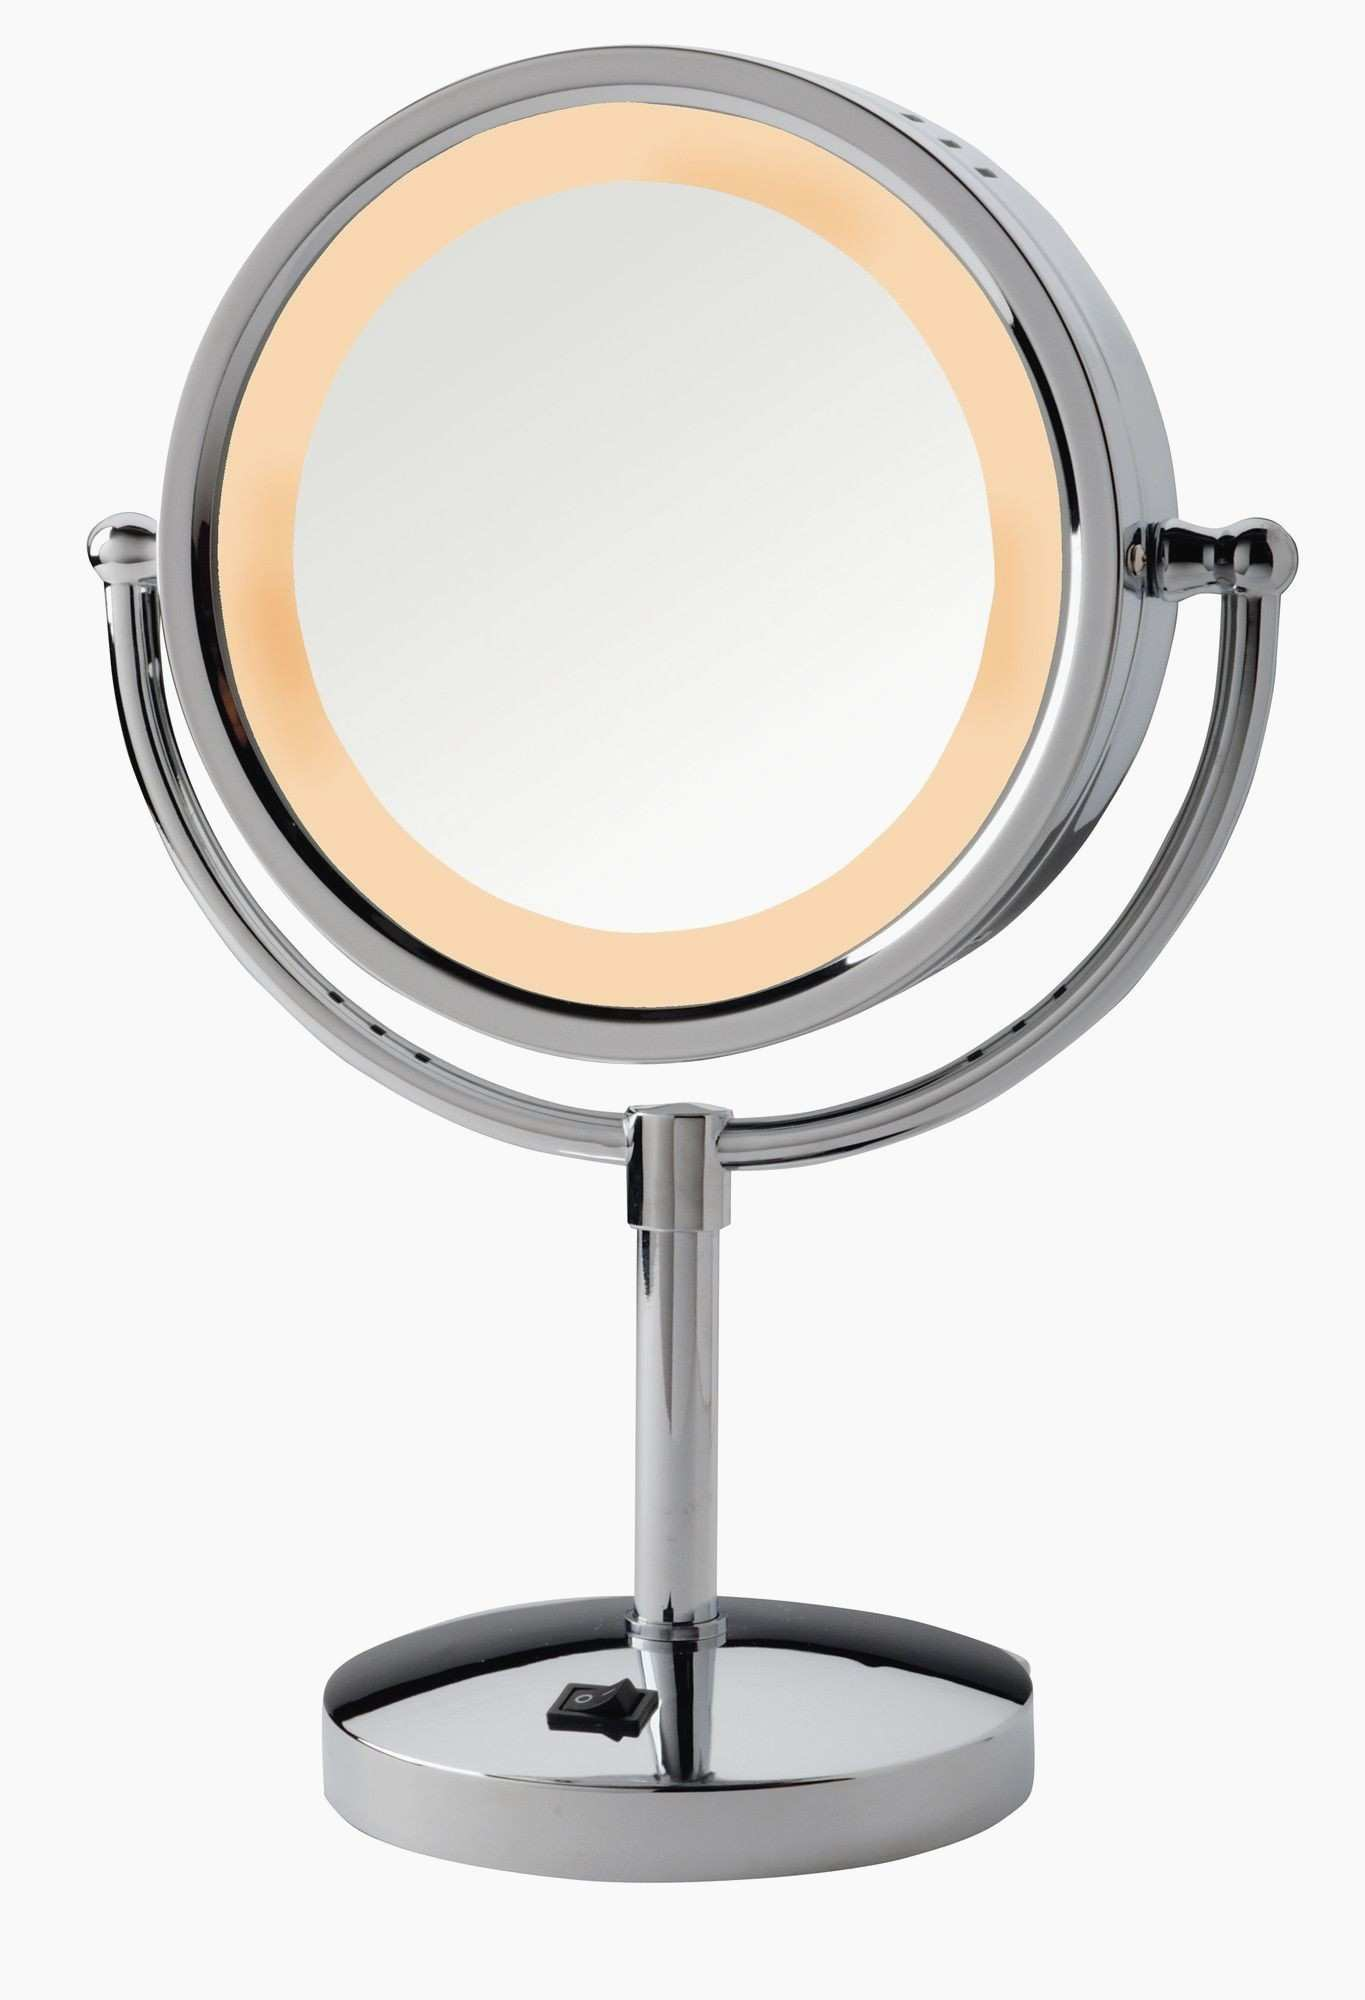 Furniture Jcpenney Mirrors Fabulous Halo Lighted Vanity Mirror